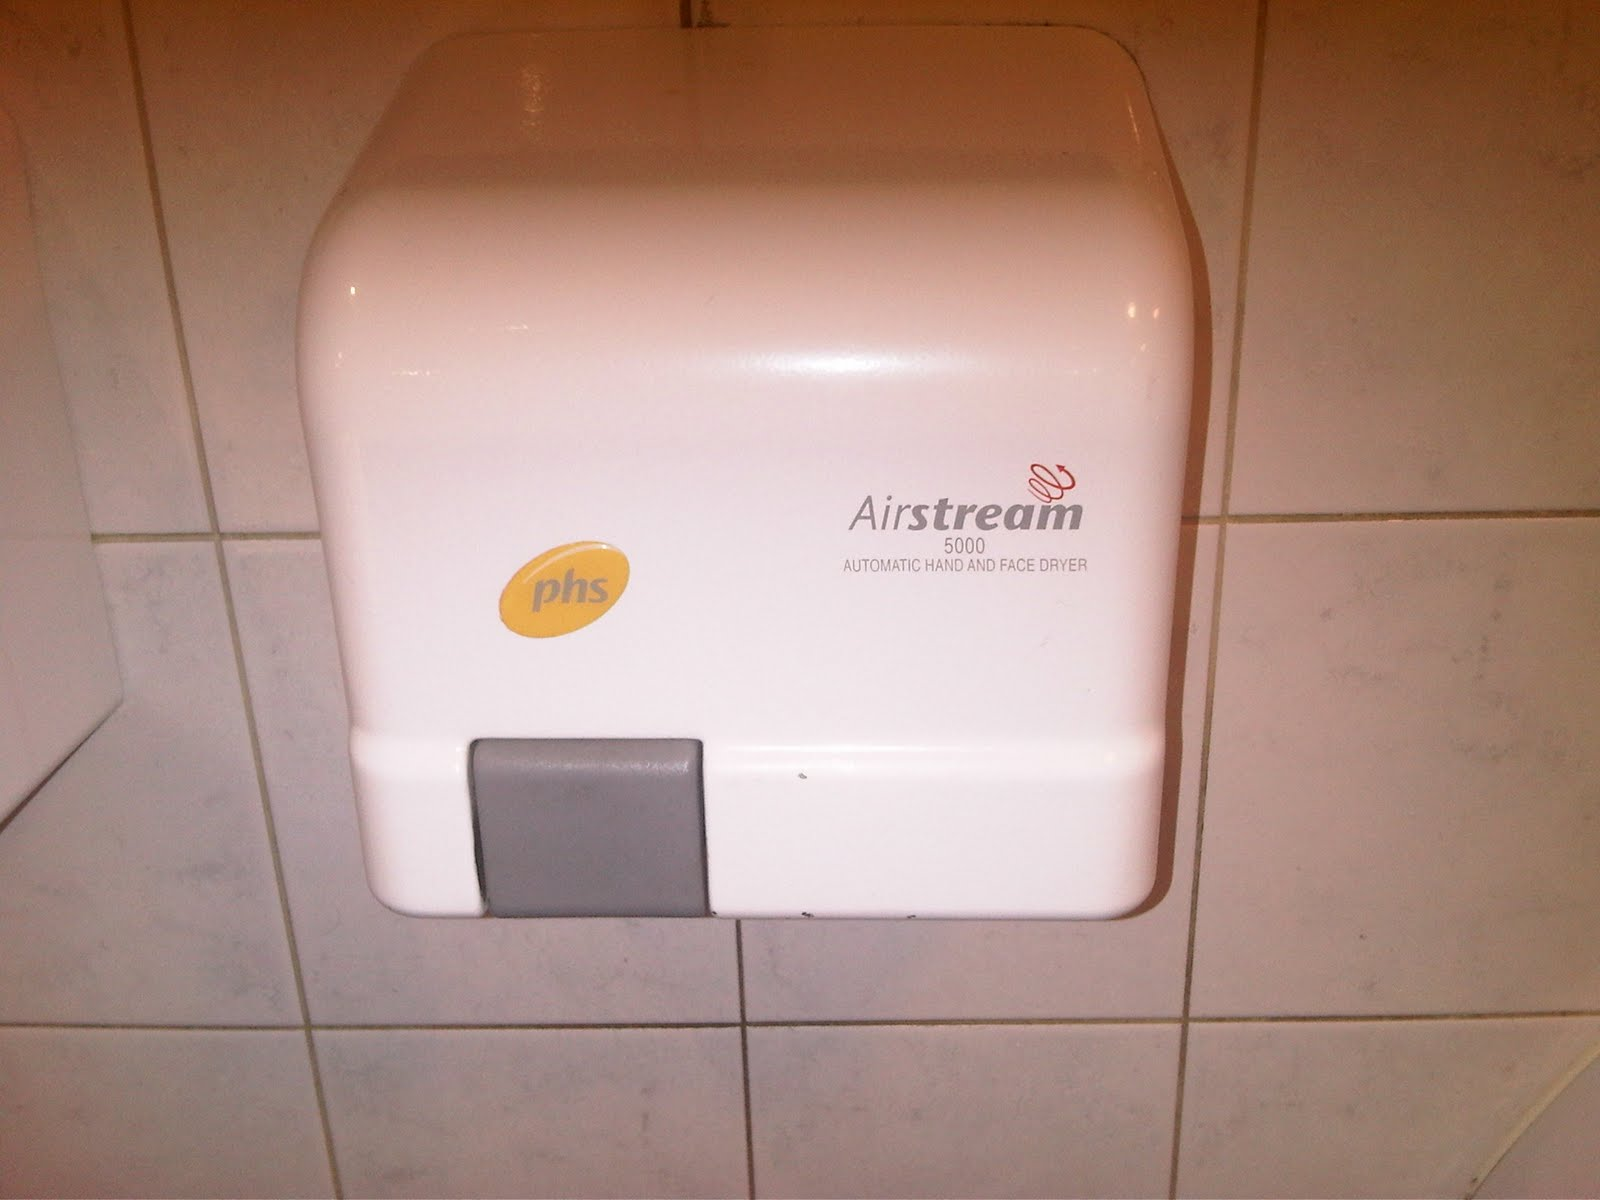 The Hand Dryers Of Great Britain Phs Airstream 5000